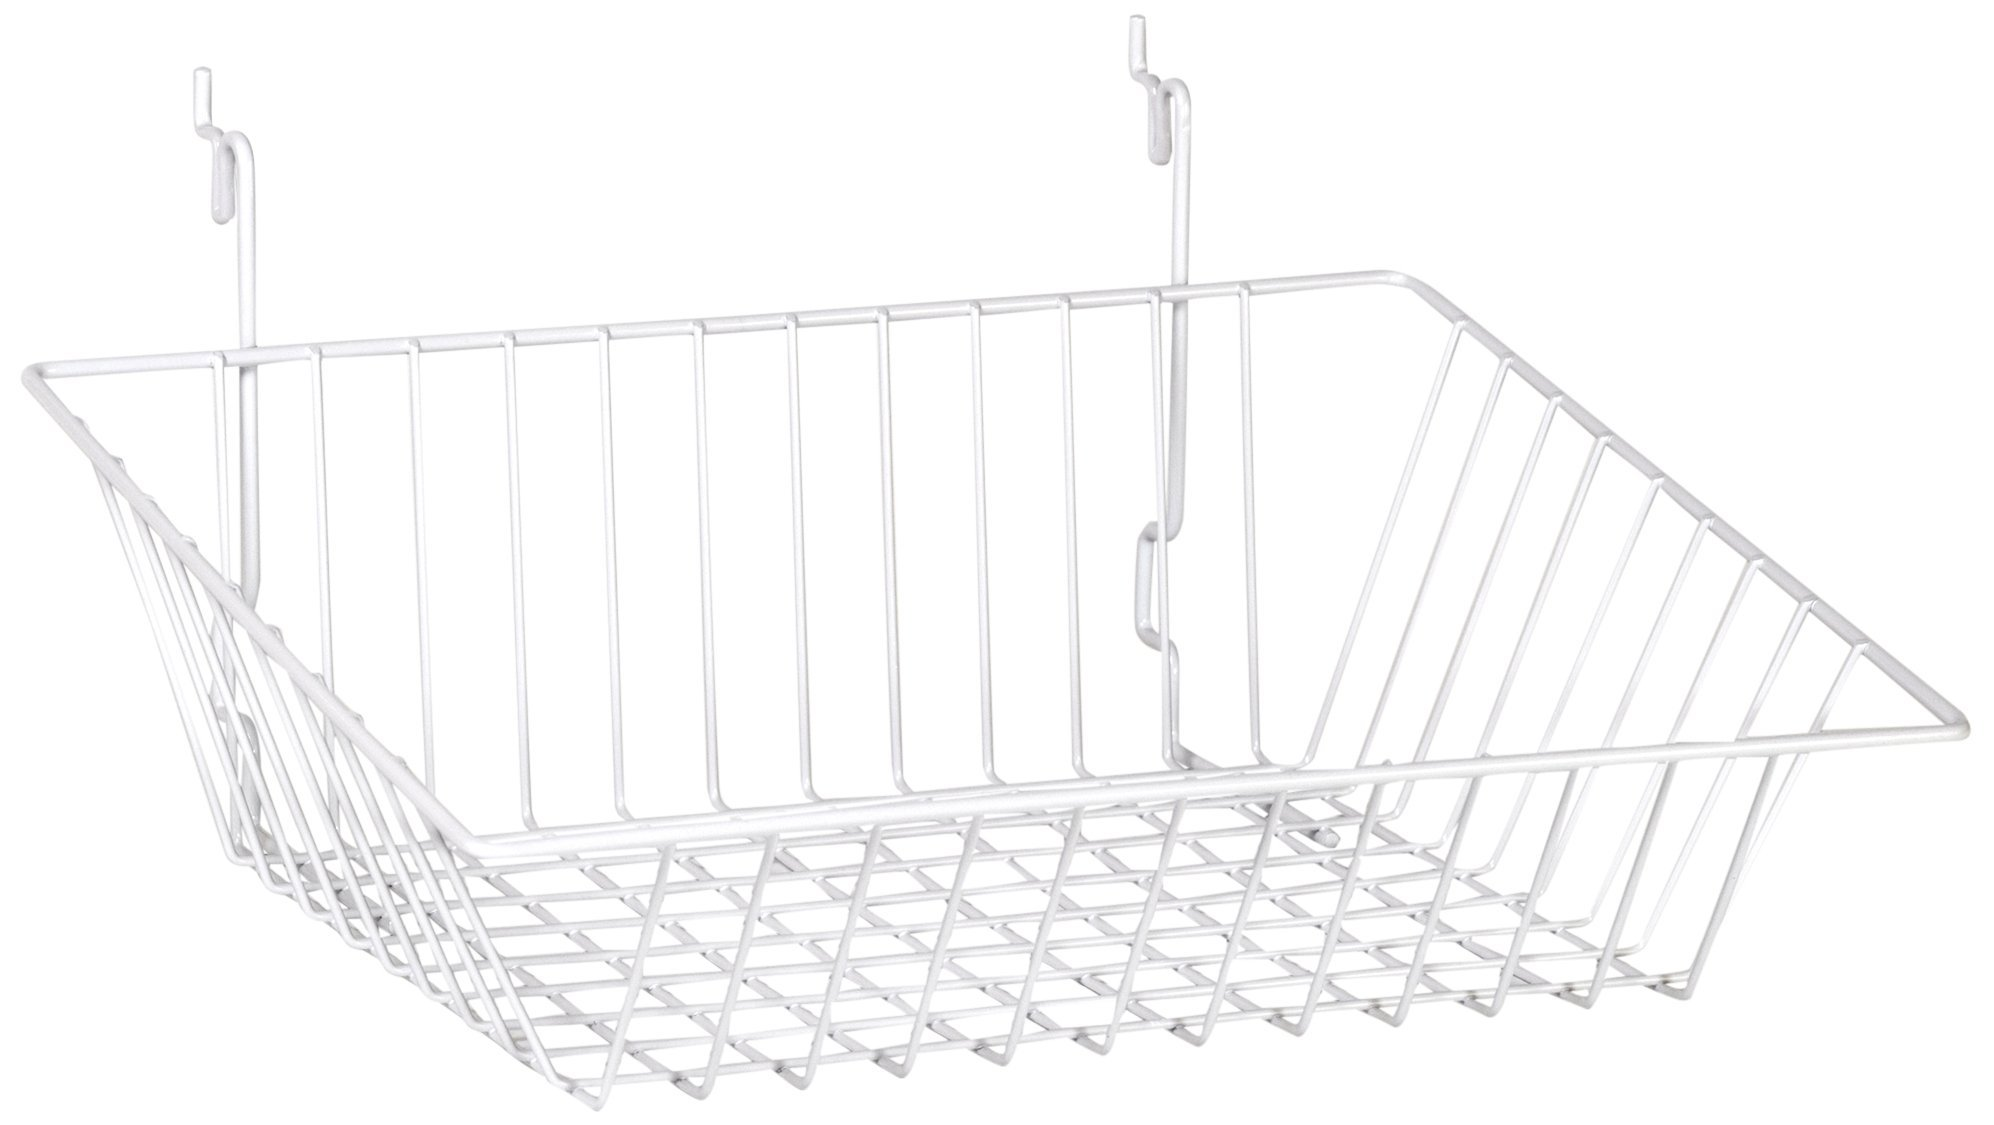 KC Store Fixtures A03031 Sloping Basket Fits Slatwall, Grid, Pegboard, 15'' W x 12'' D x 5'' H Back x 3'' H Front, White (Pack of 6)